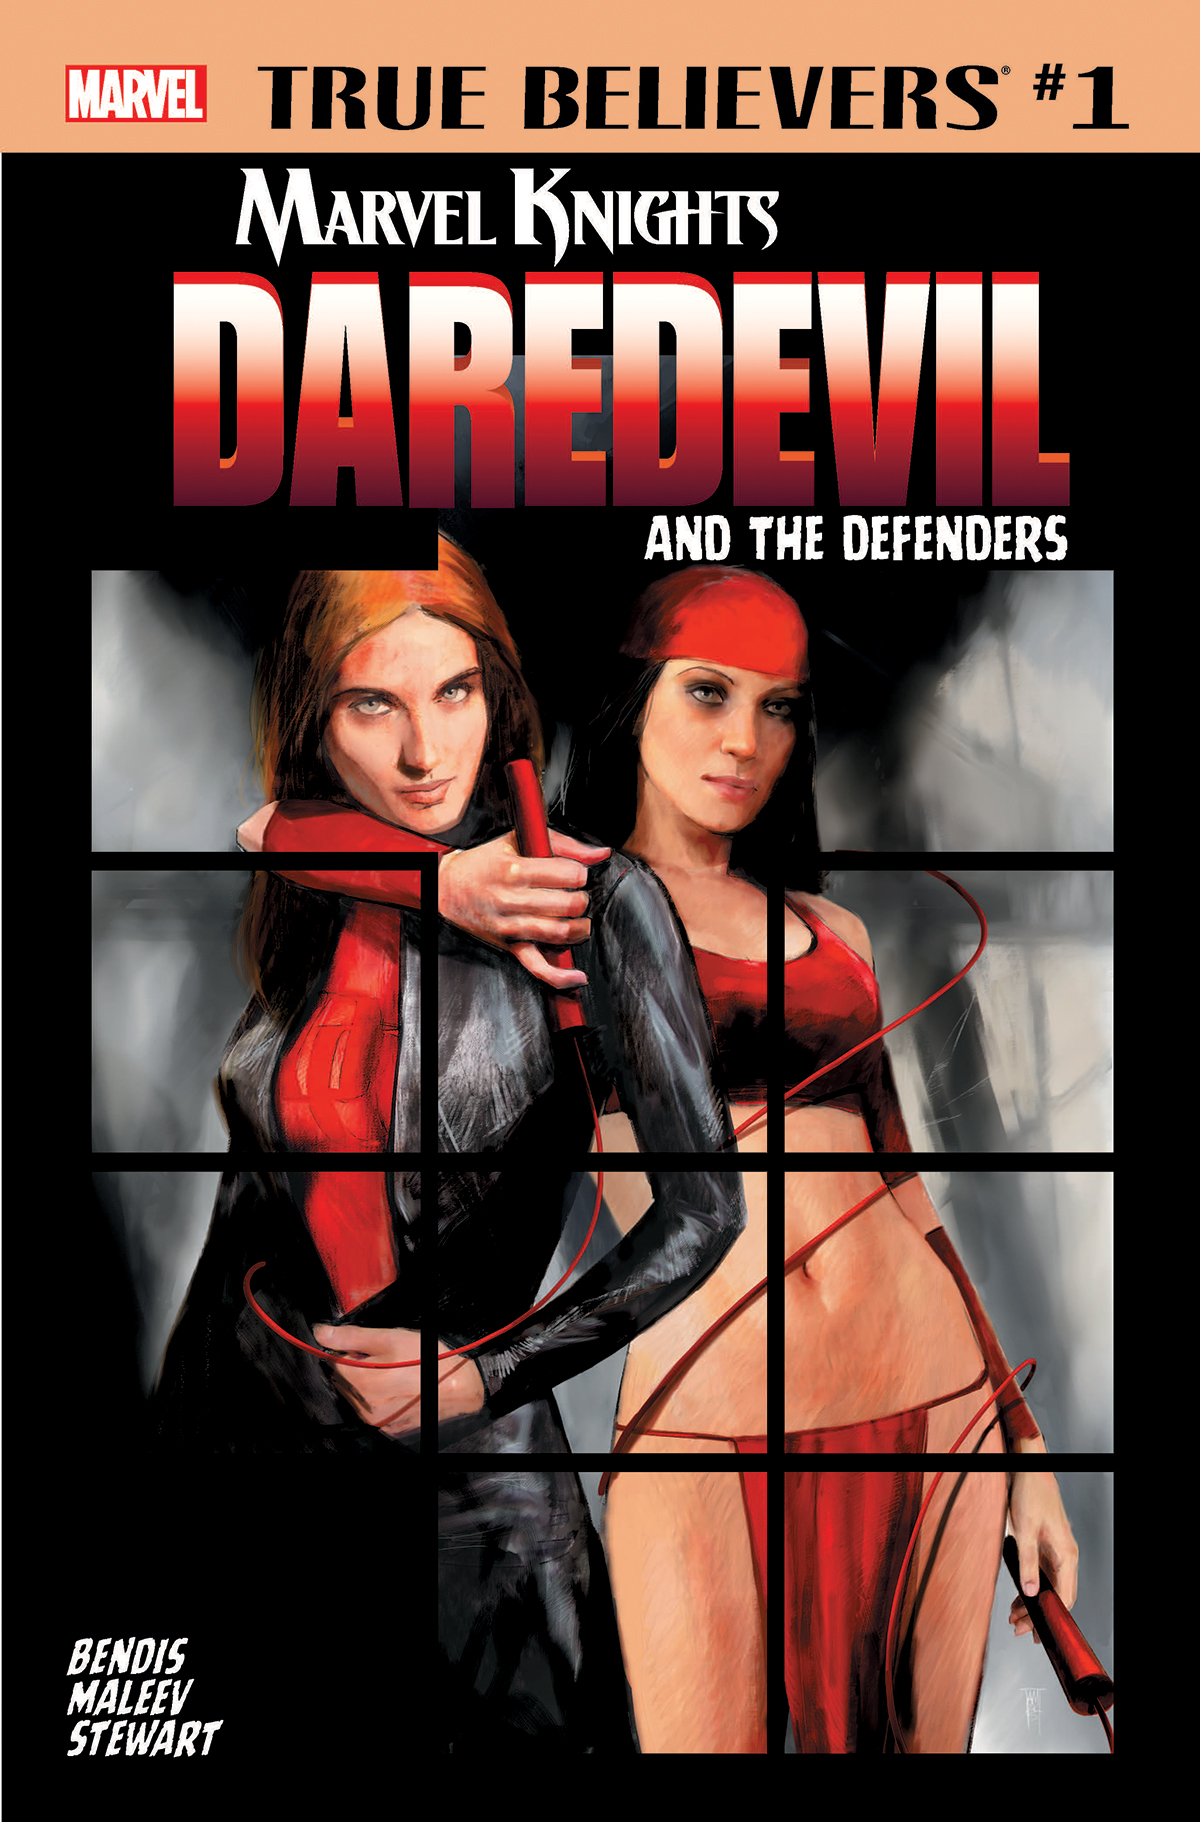 True Believers: Marvel Knights 20th Anniversary - Daredevil and the Defenders Vol 1